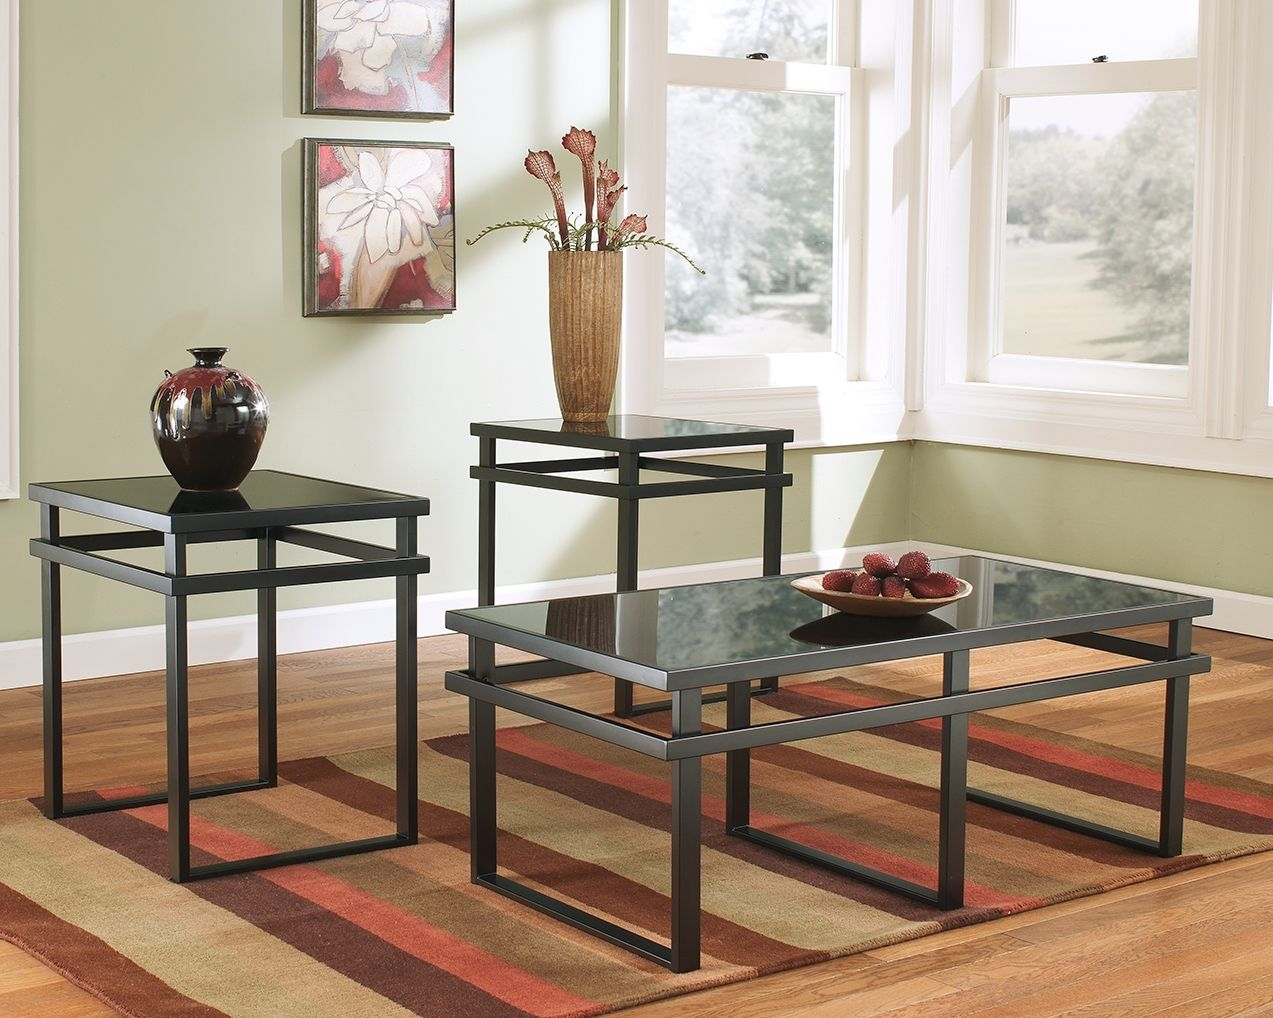 Laney Table Set Of 3 Black In 2020 Living Room Table Sets Living Room Table 3 Piece Coffee Table Set